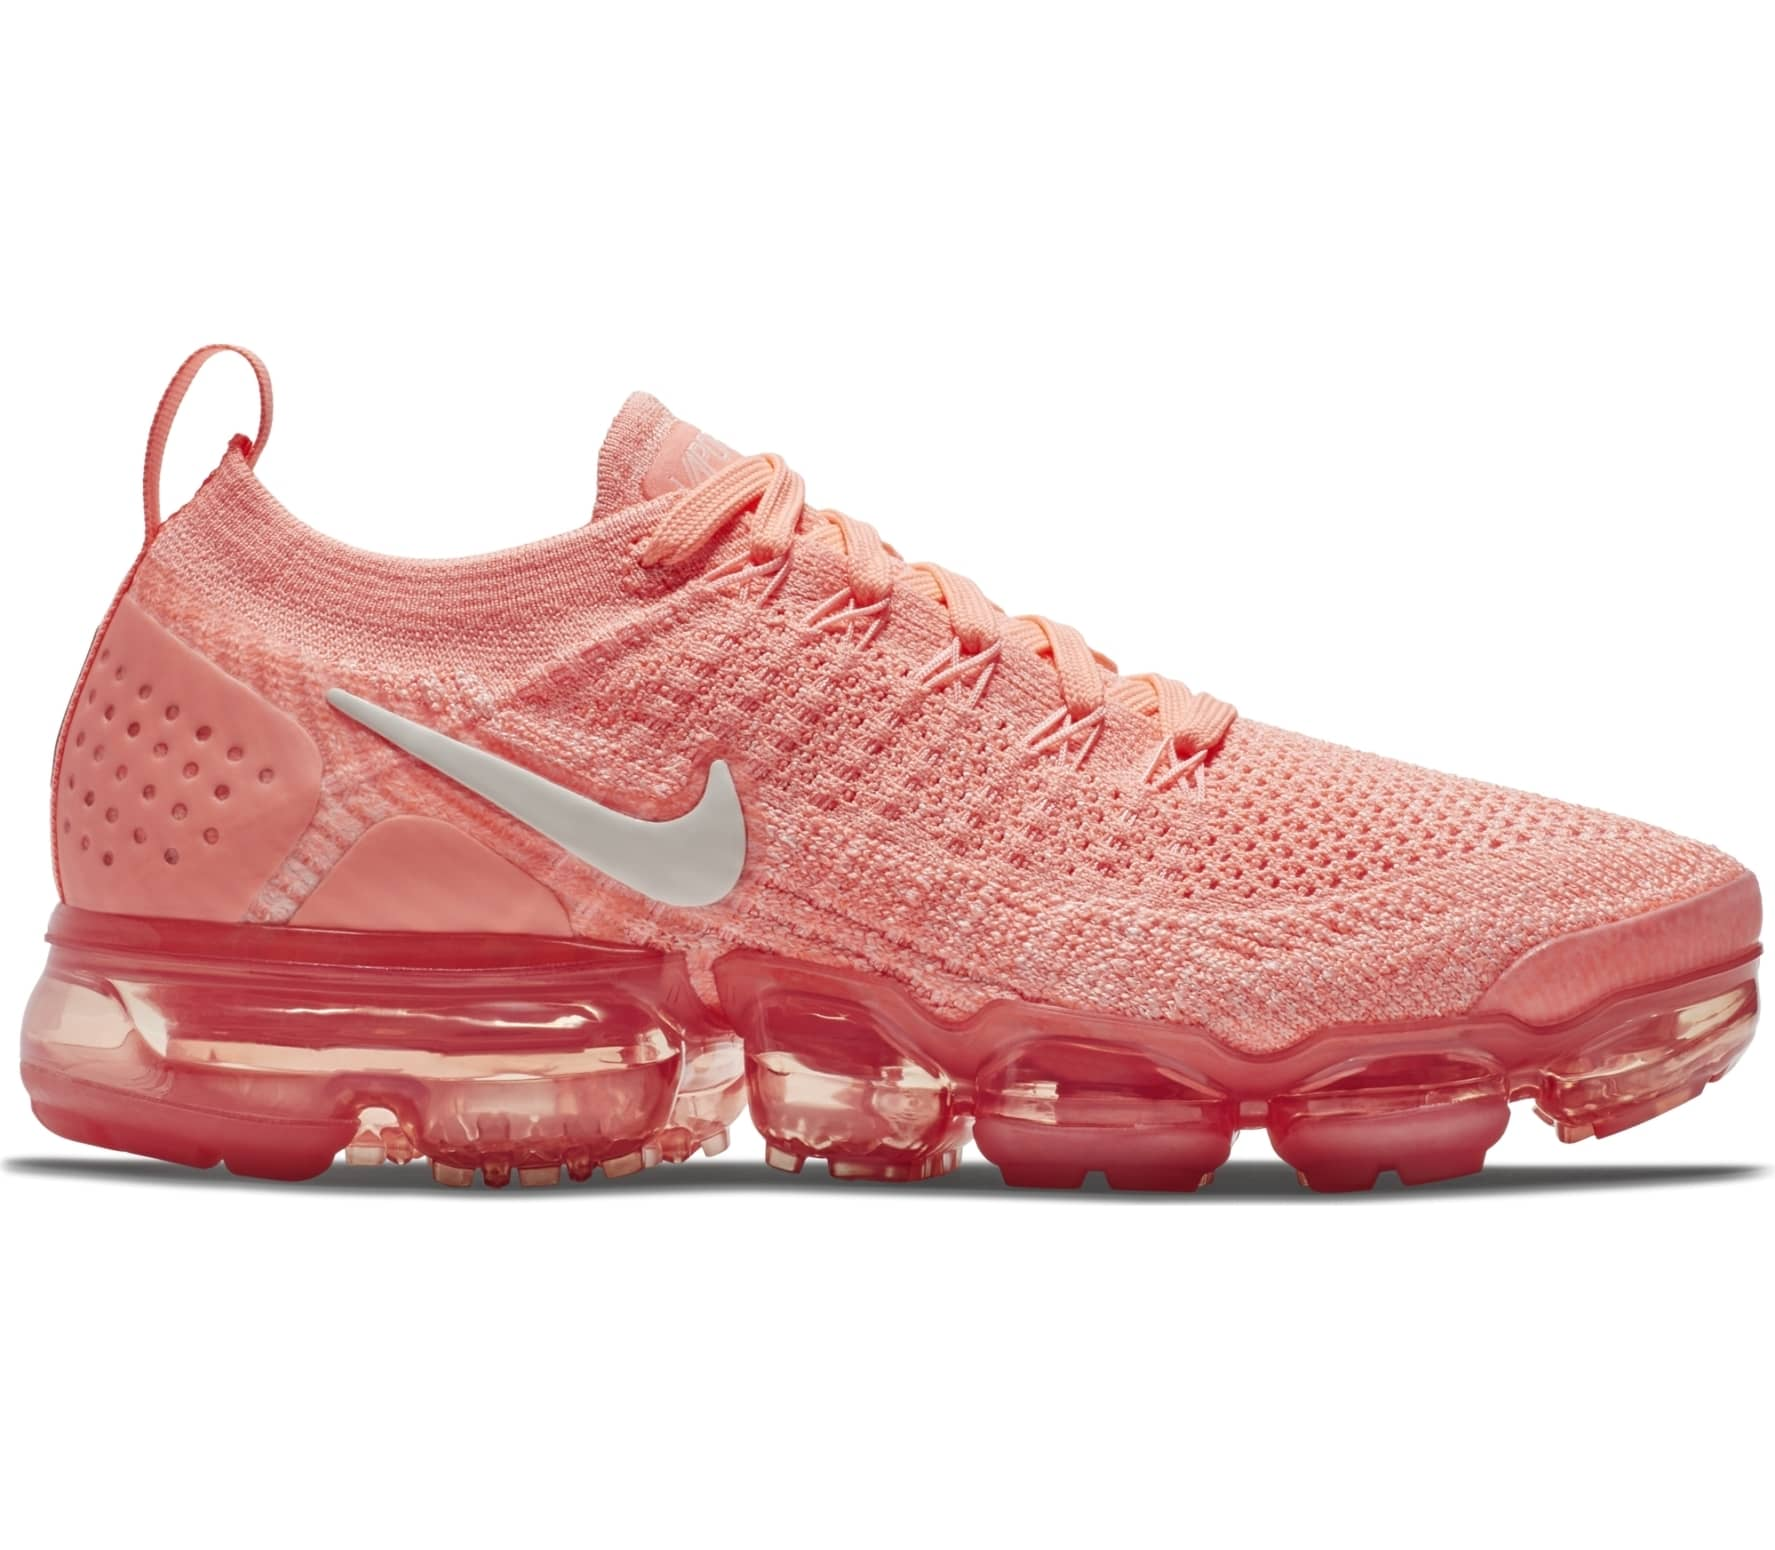 8d7b99e24a886 Nike - Air VaporMax Flyknit 2 women s running shoes (coral pink ...